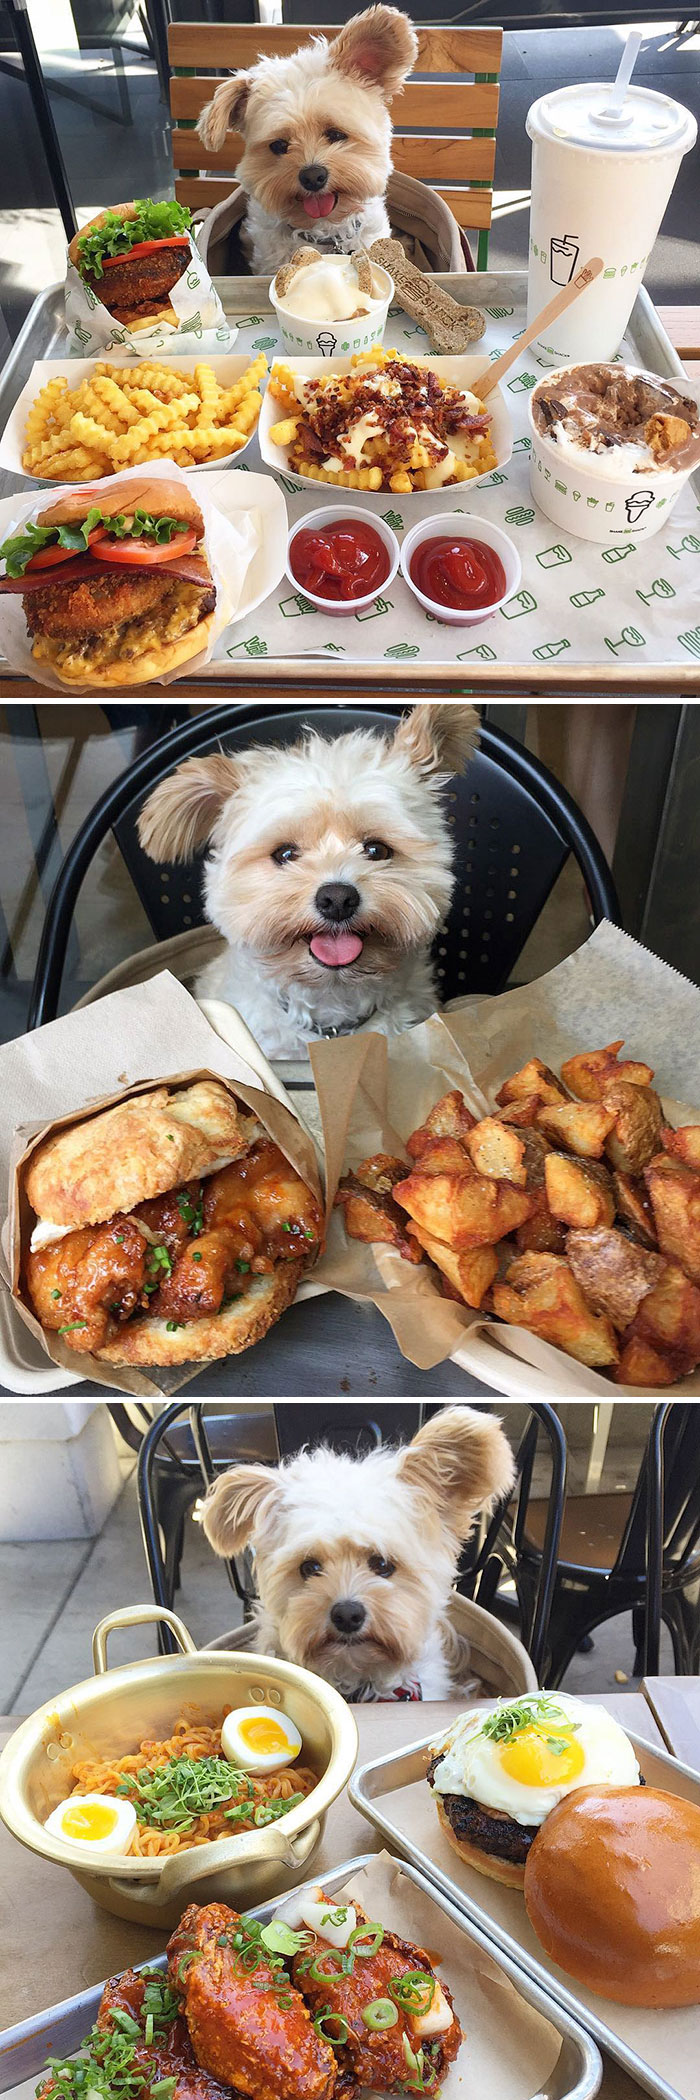 spoiled-dogs-that-live-better-than-you-1-59b13ff09a6f7__700-59c4cf91d5ab4__700